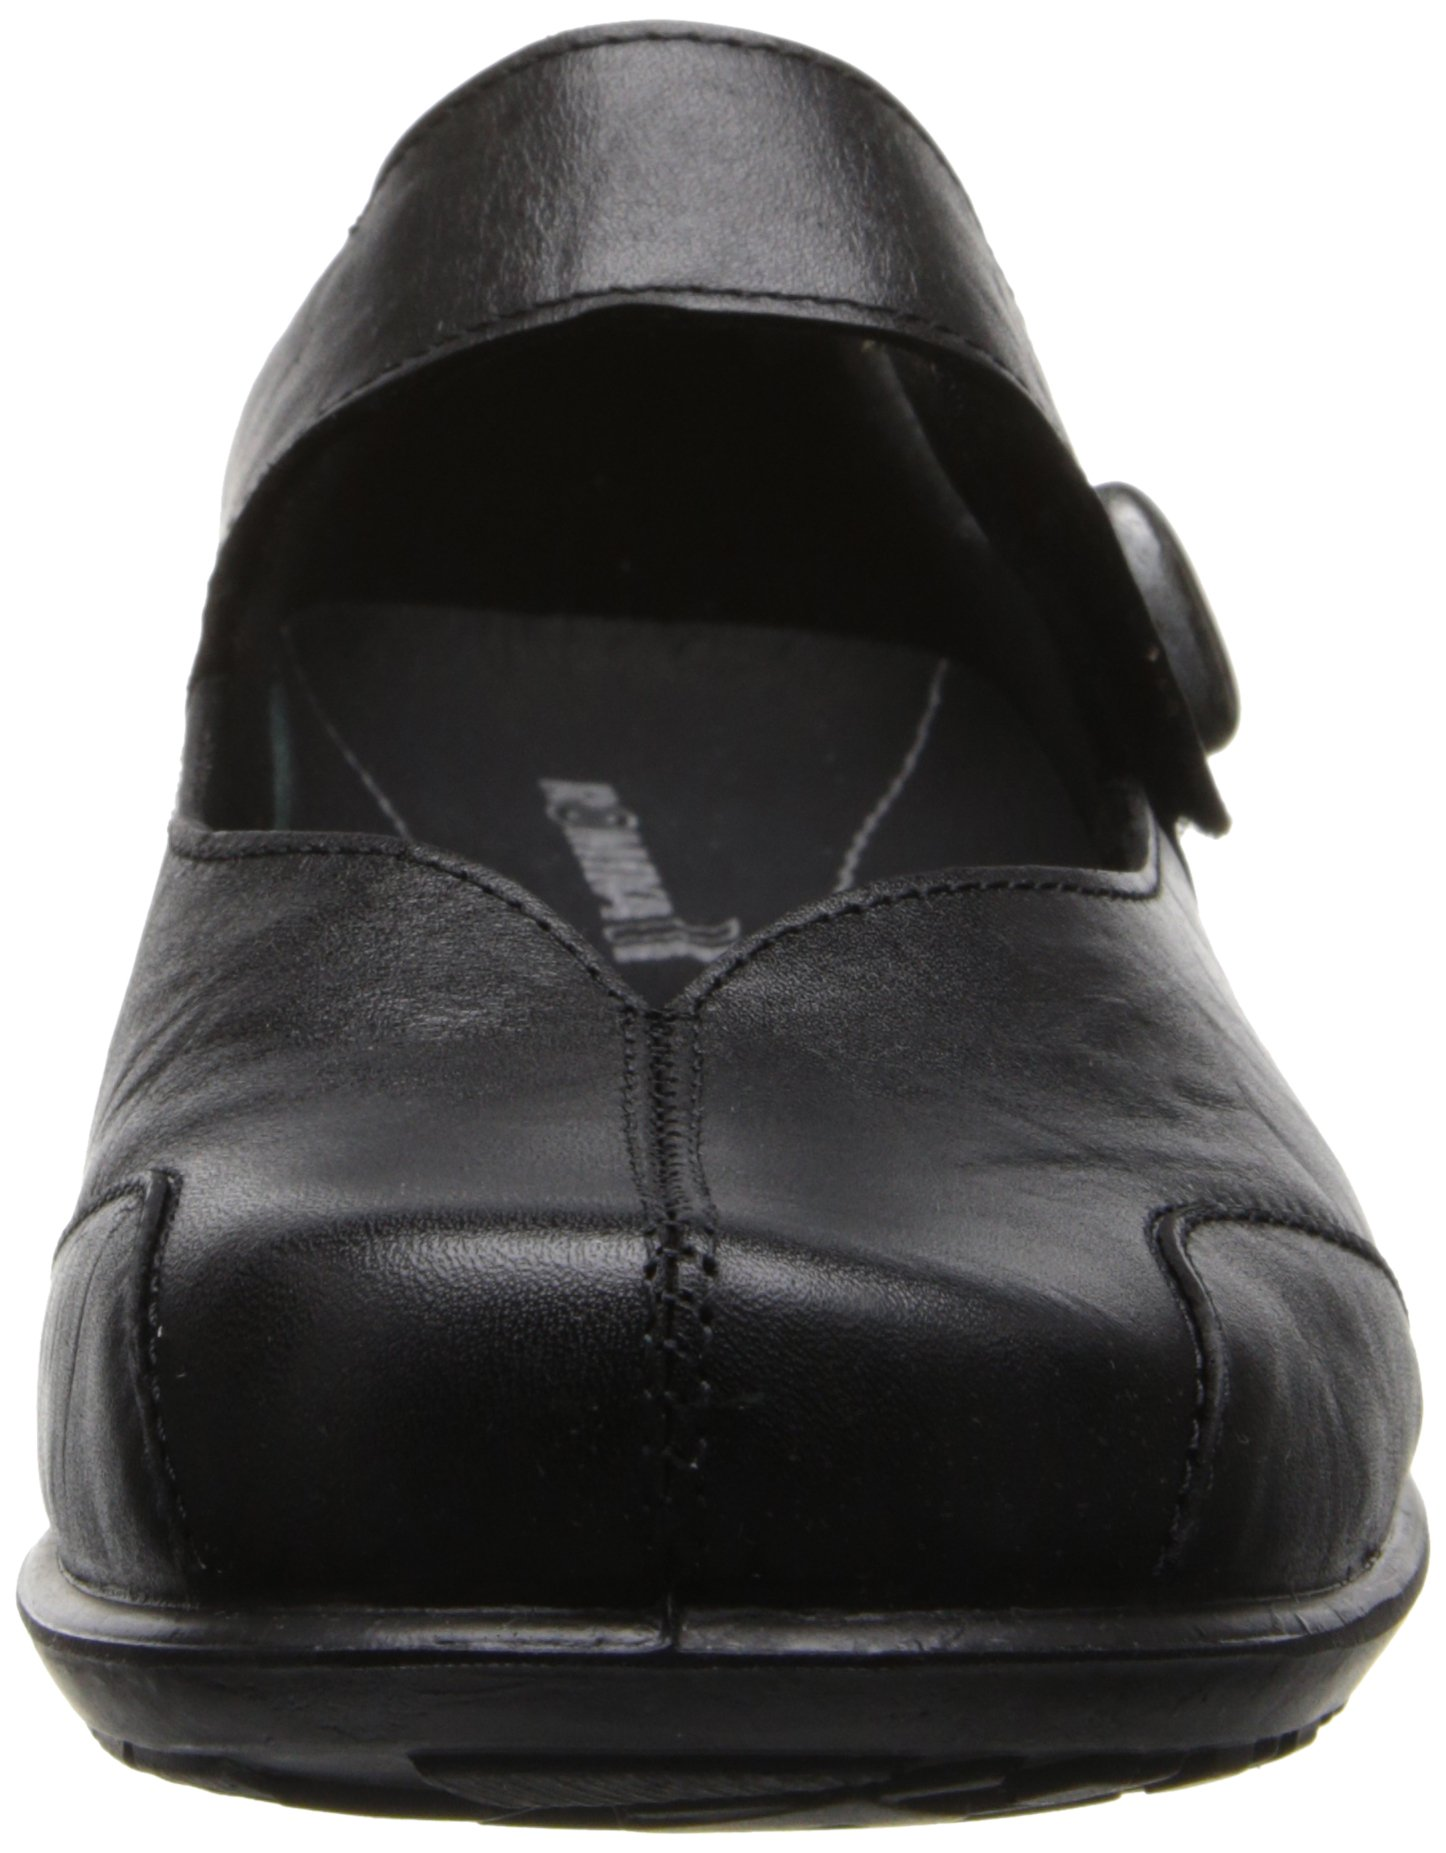 Romika Women's Citylight 87 Mary Jane Flat,Black,39 BR/8-8.5 M US by Romika (Image #4)